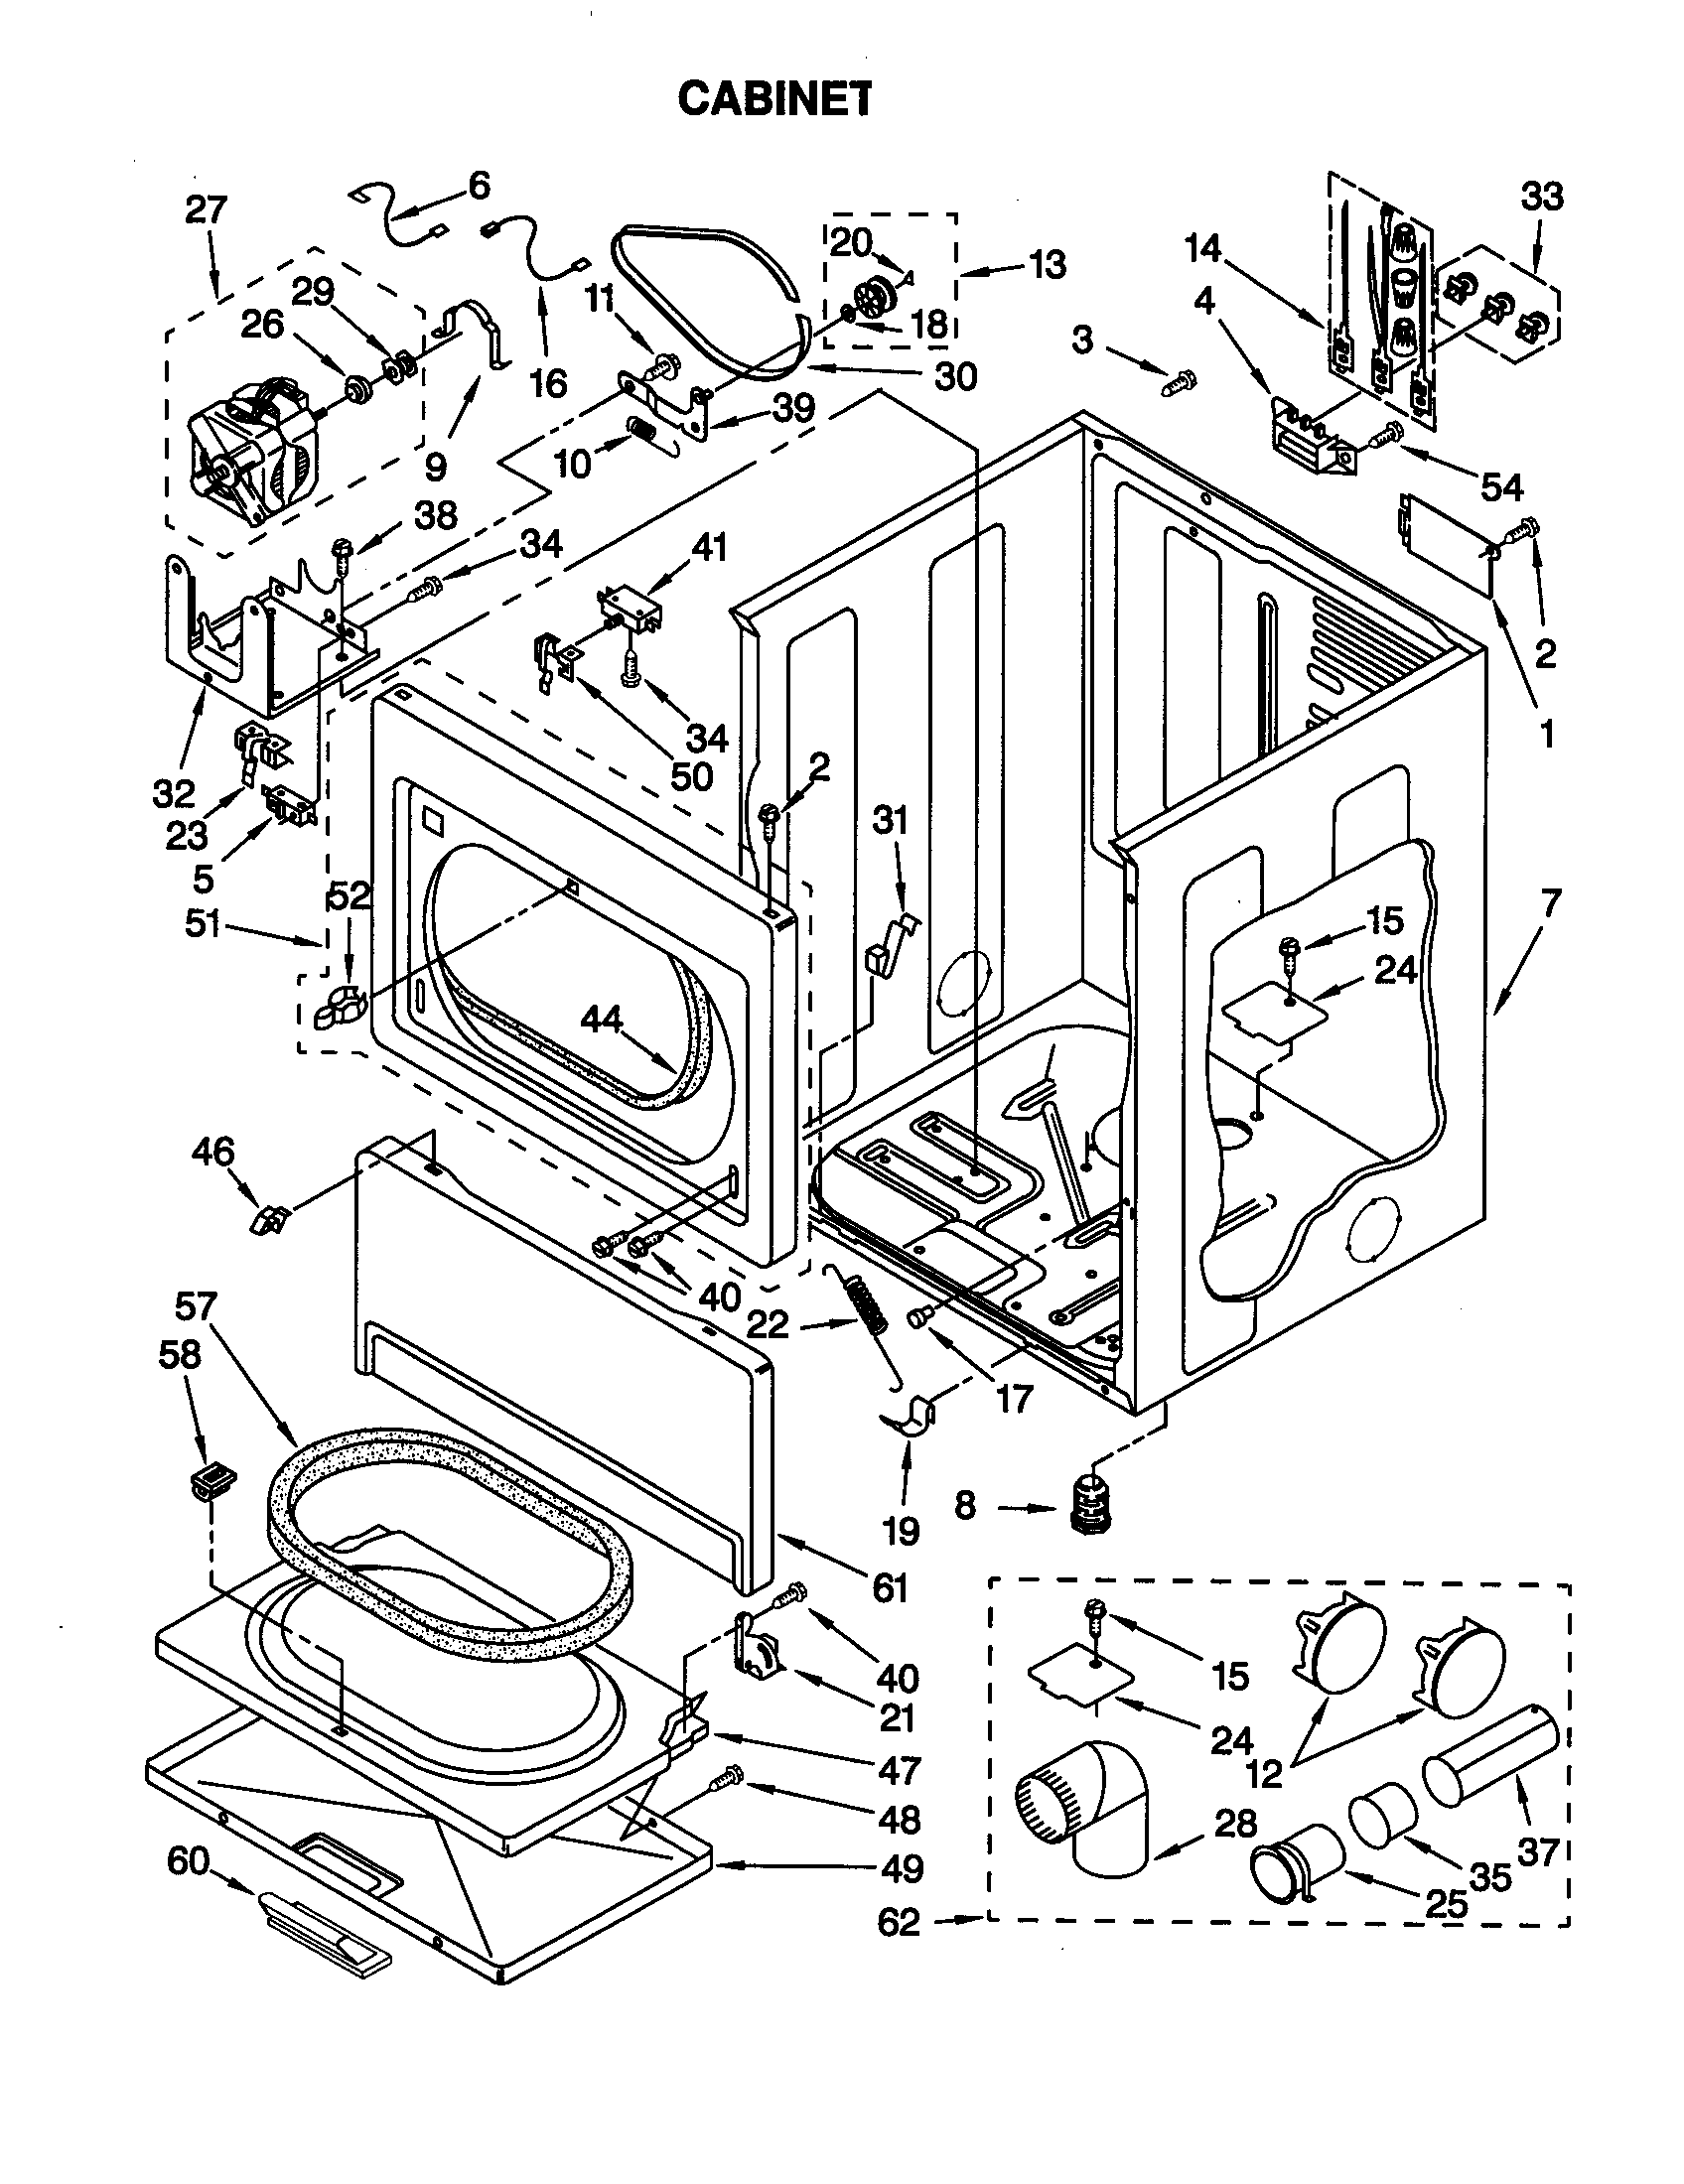 CABINET Diagram & Parts List for Model 11069912990 Kenmore